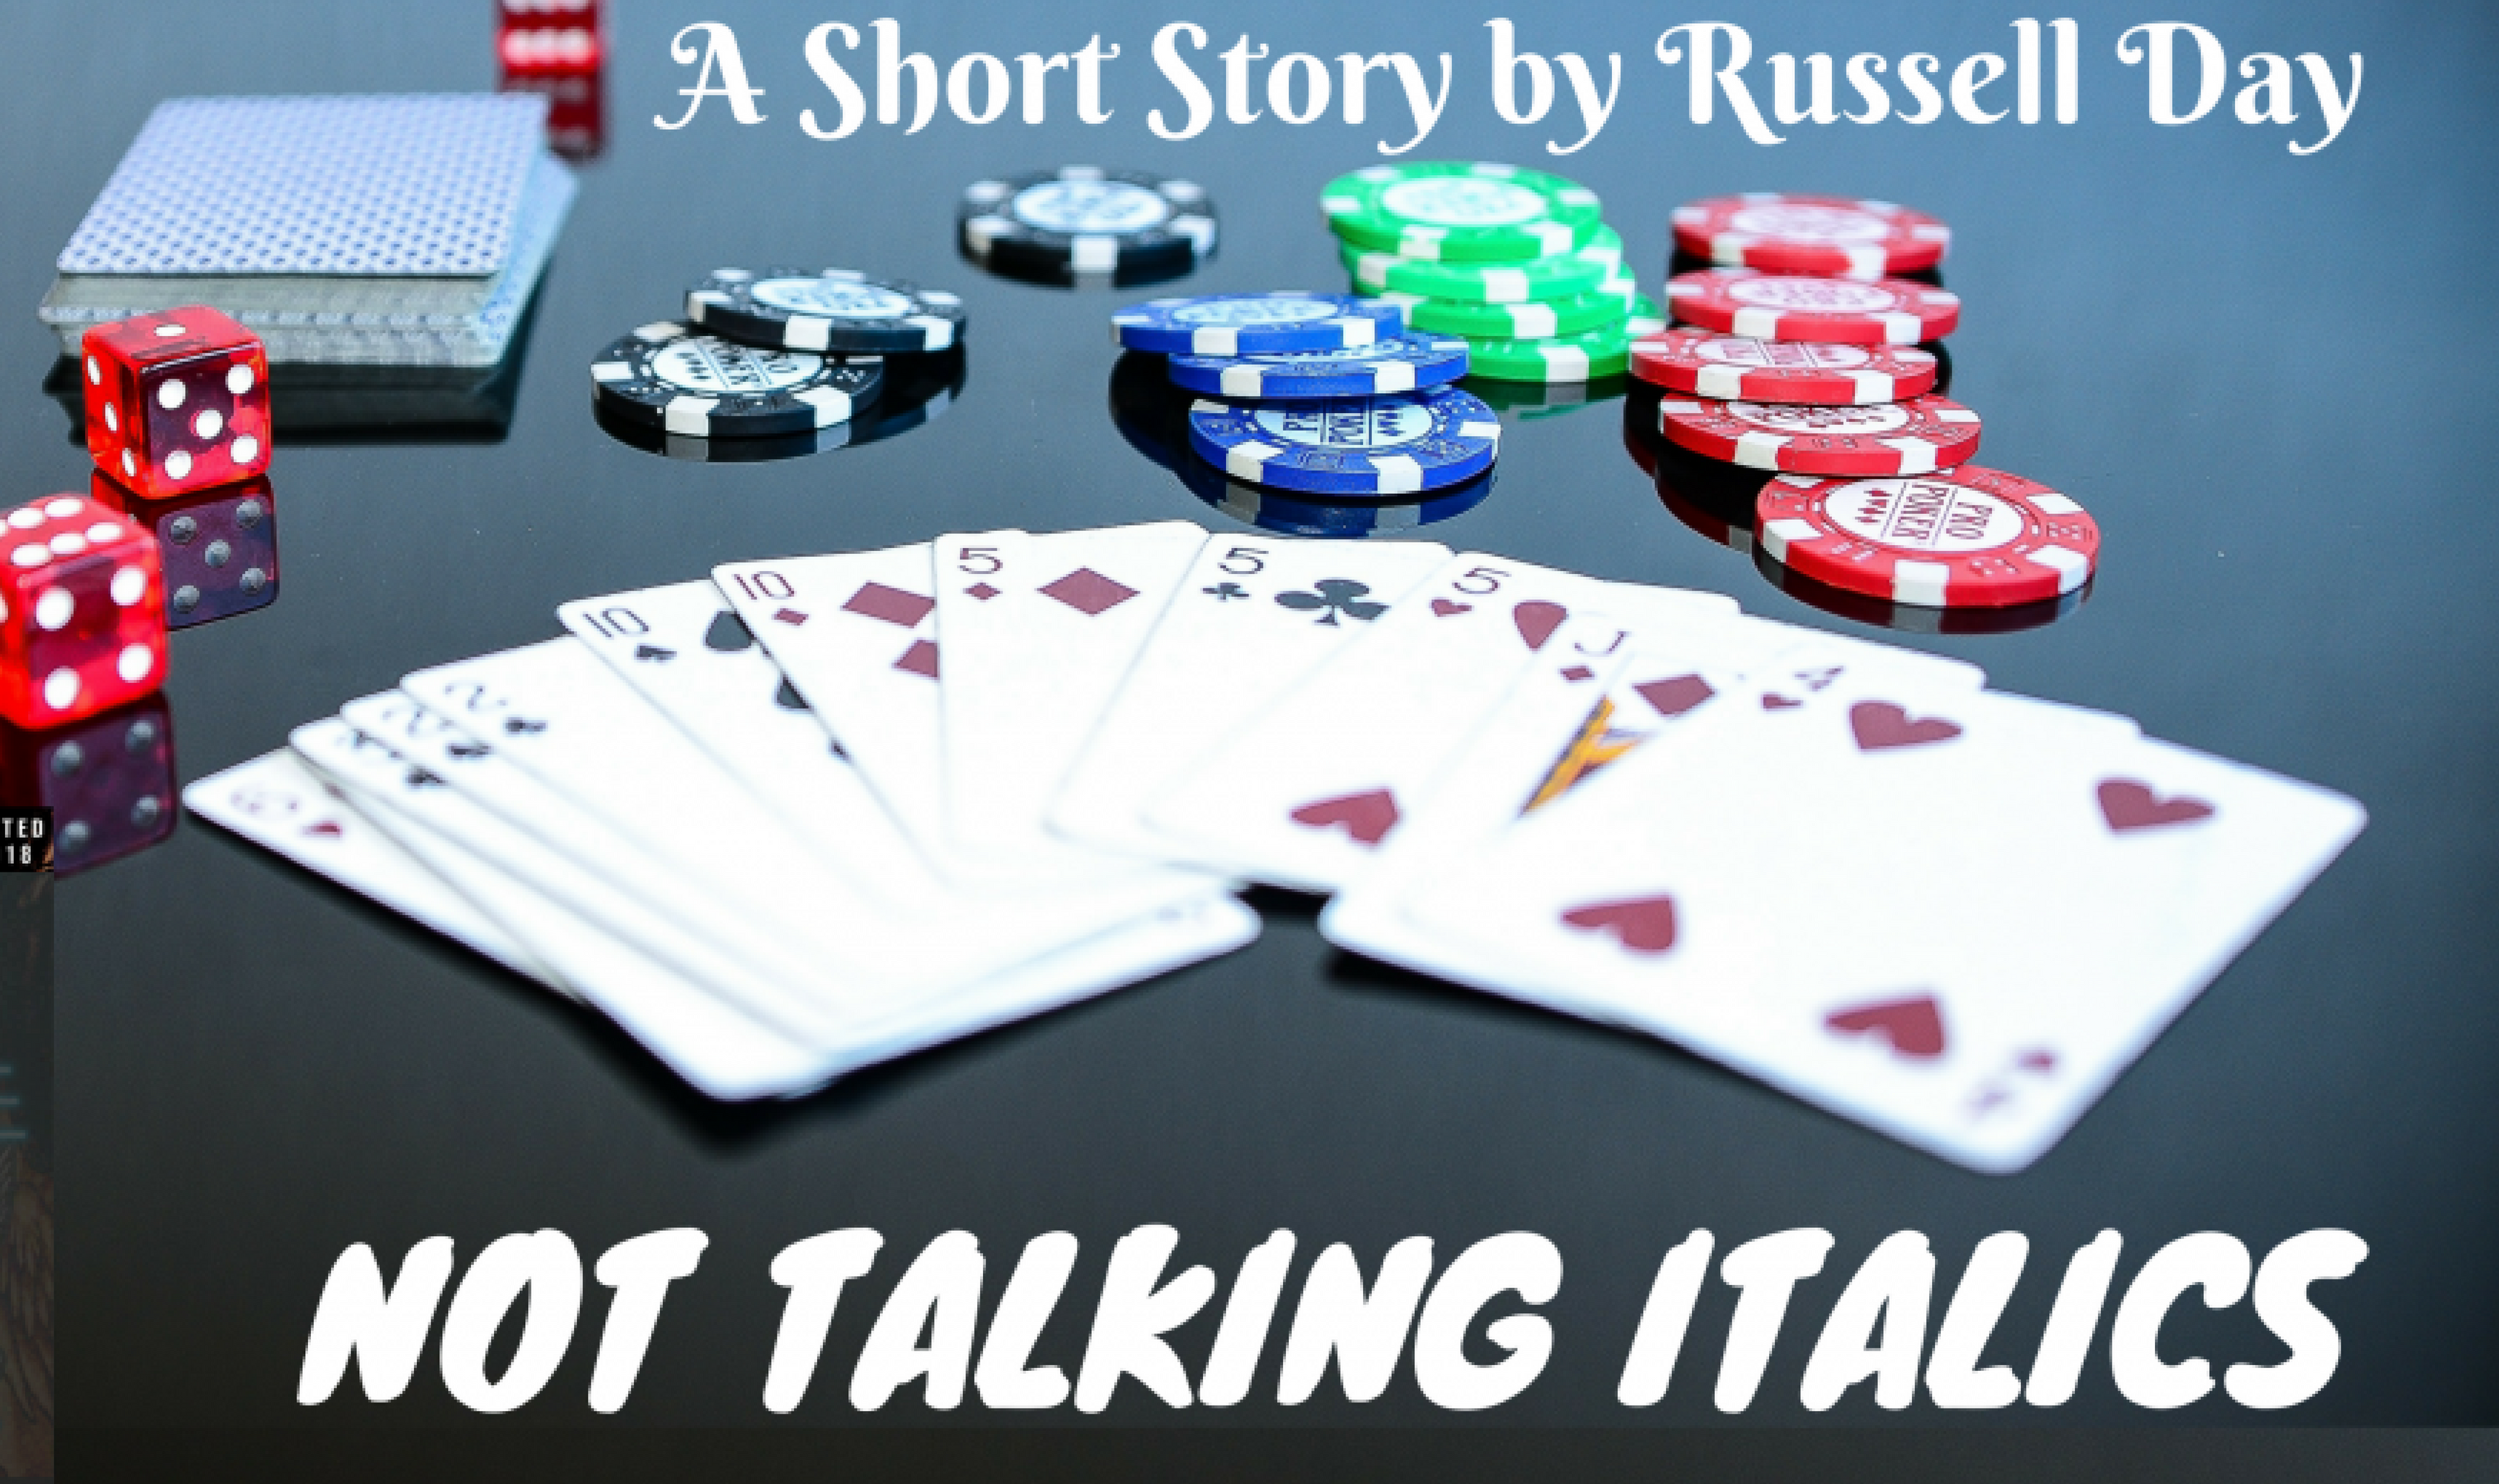 Not Talking Italics - Russel Day - Short Story Image